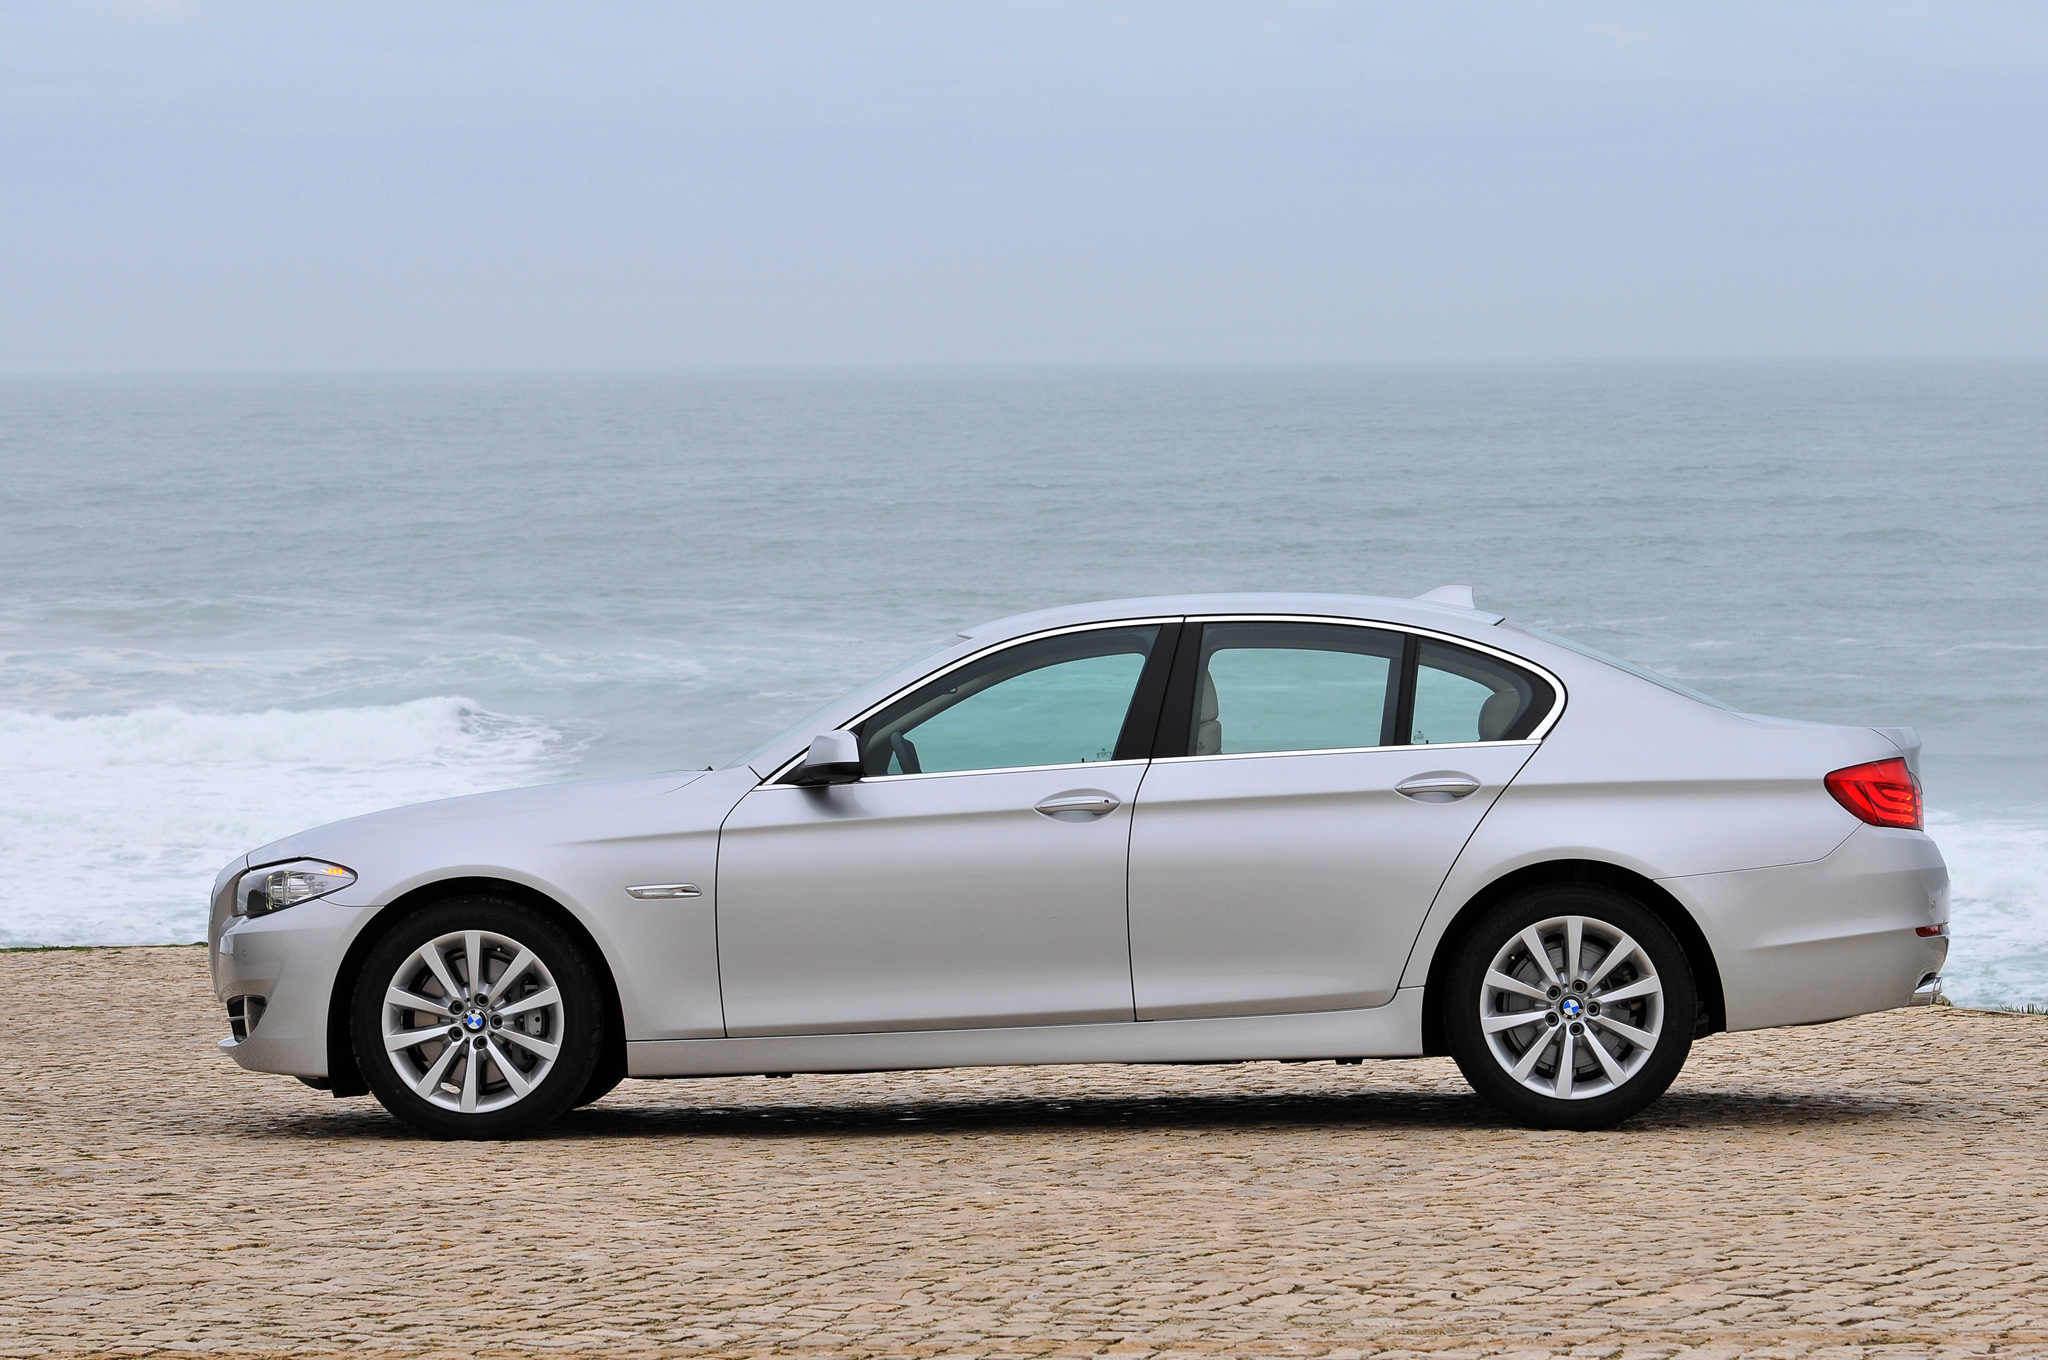 BMW 5 series 550i 2013 photo - 3